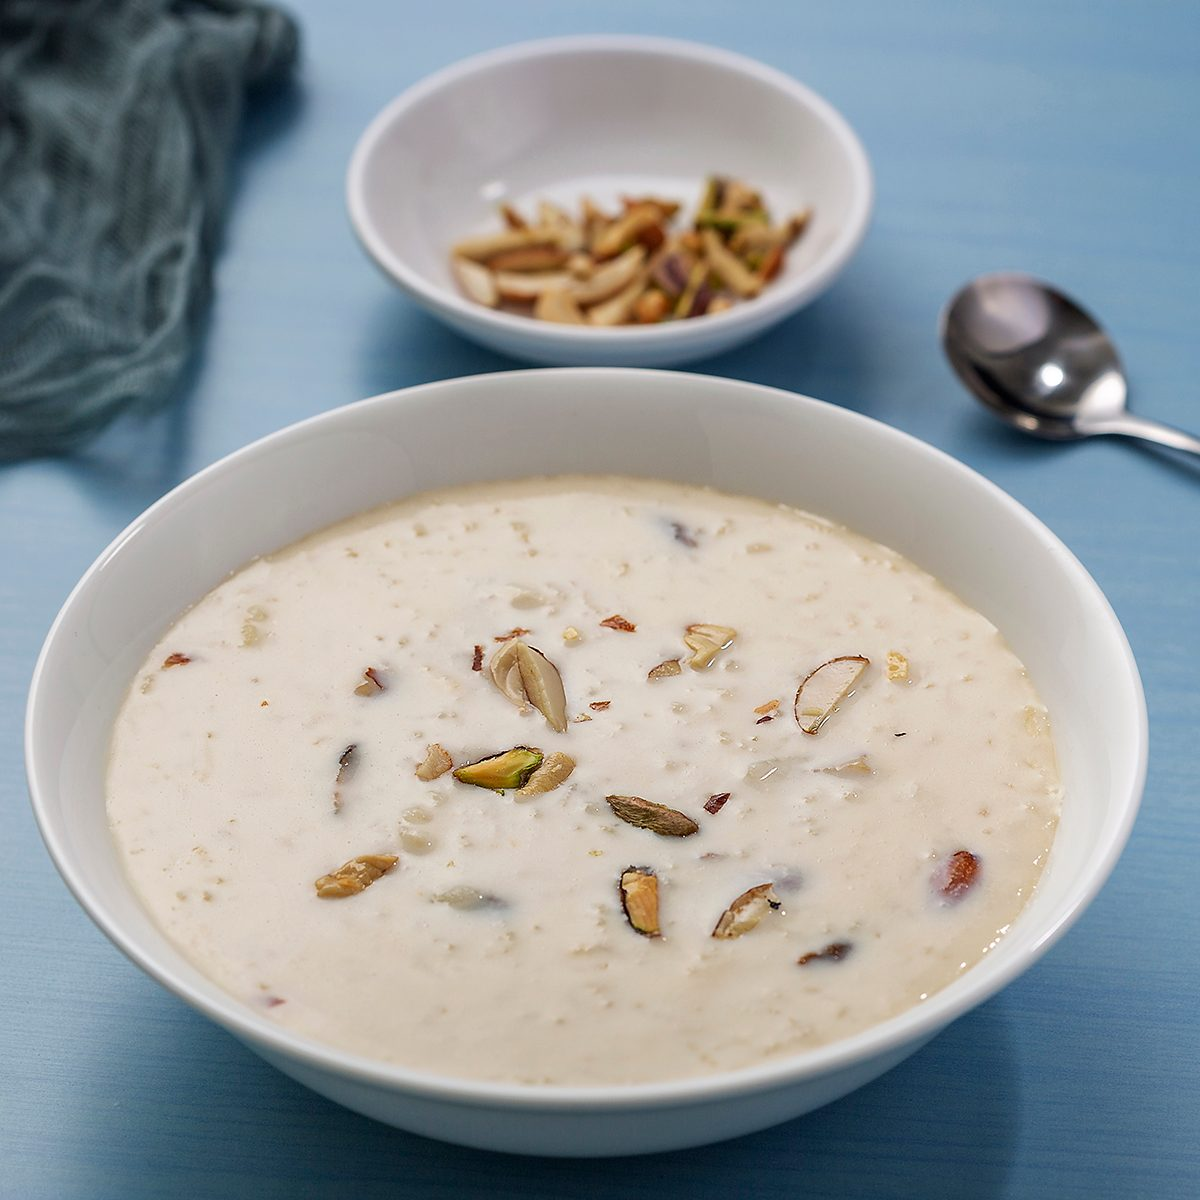 Kheer or Payasam is a type of pudding from the Indian subcontinent, made by boiling milk and sugar and is flavoured with desiccated coconut, cardamom, raisins, saffron, cashews, pistachios, almonds or other dry fruits and nuts.